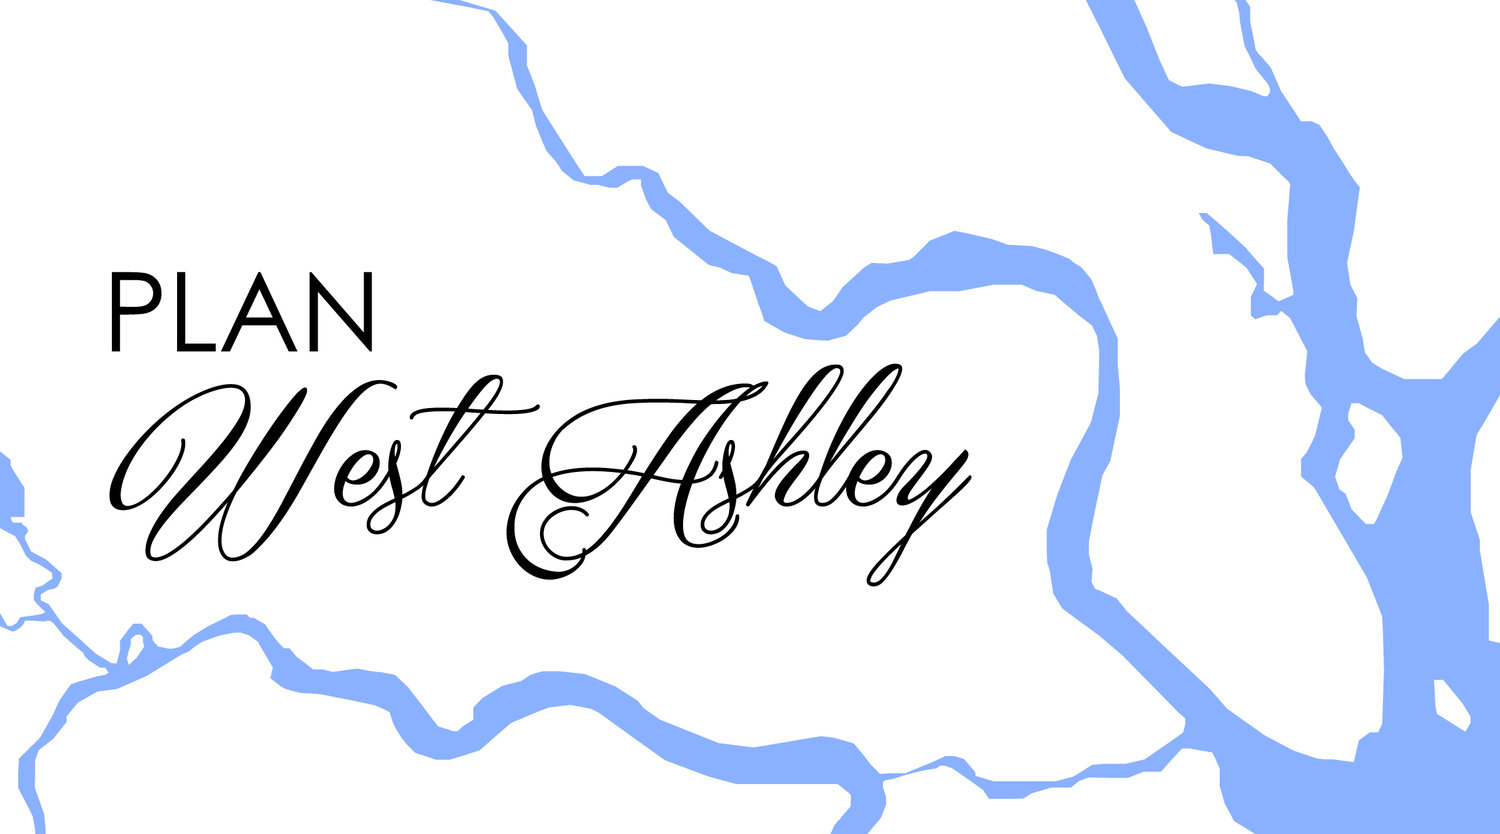 Plan West Ashley